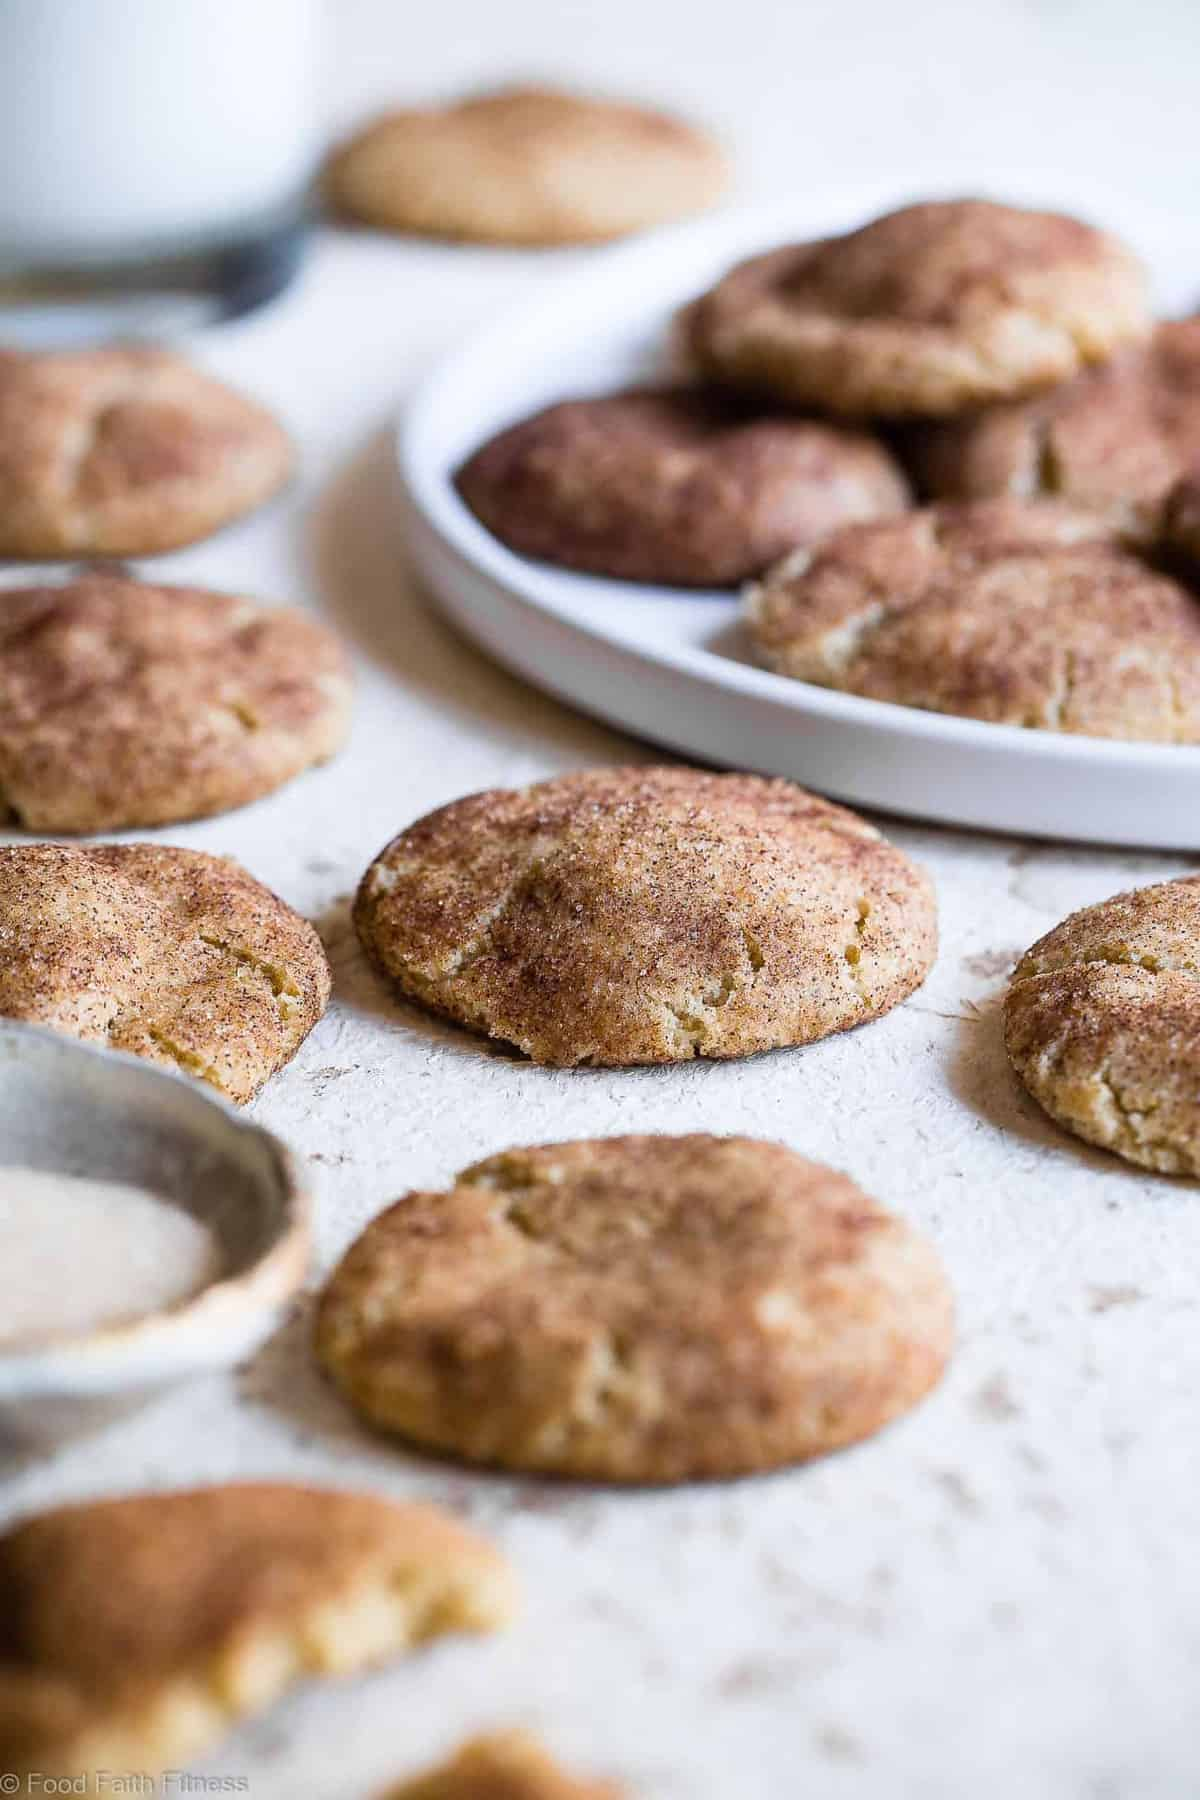 Gluten Free Vegan Snickerdoodles -These EASY, egg, dairy and gluten free snickerdoodles are perfectly soft, chewy and spicy-sweet! Made from simple, pantry-essential ingredients, only 120 calories and SO tasty! | Foodfaithfitness | #Glutenfree #Vegan #Healthy #Dairyfree #Eggfree